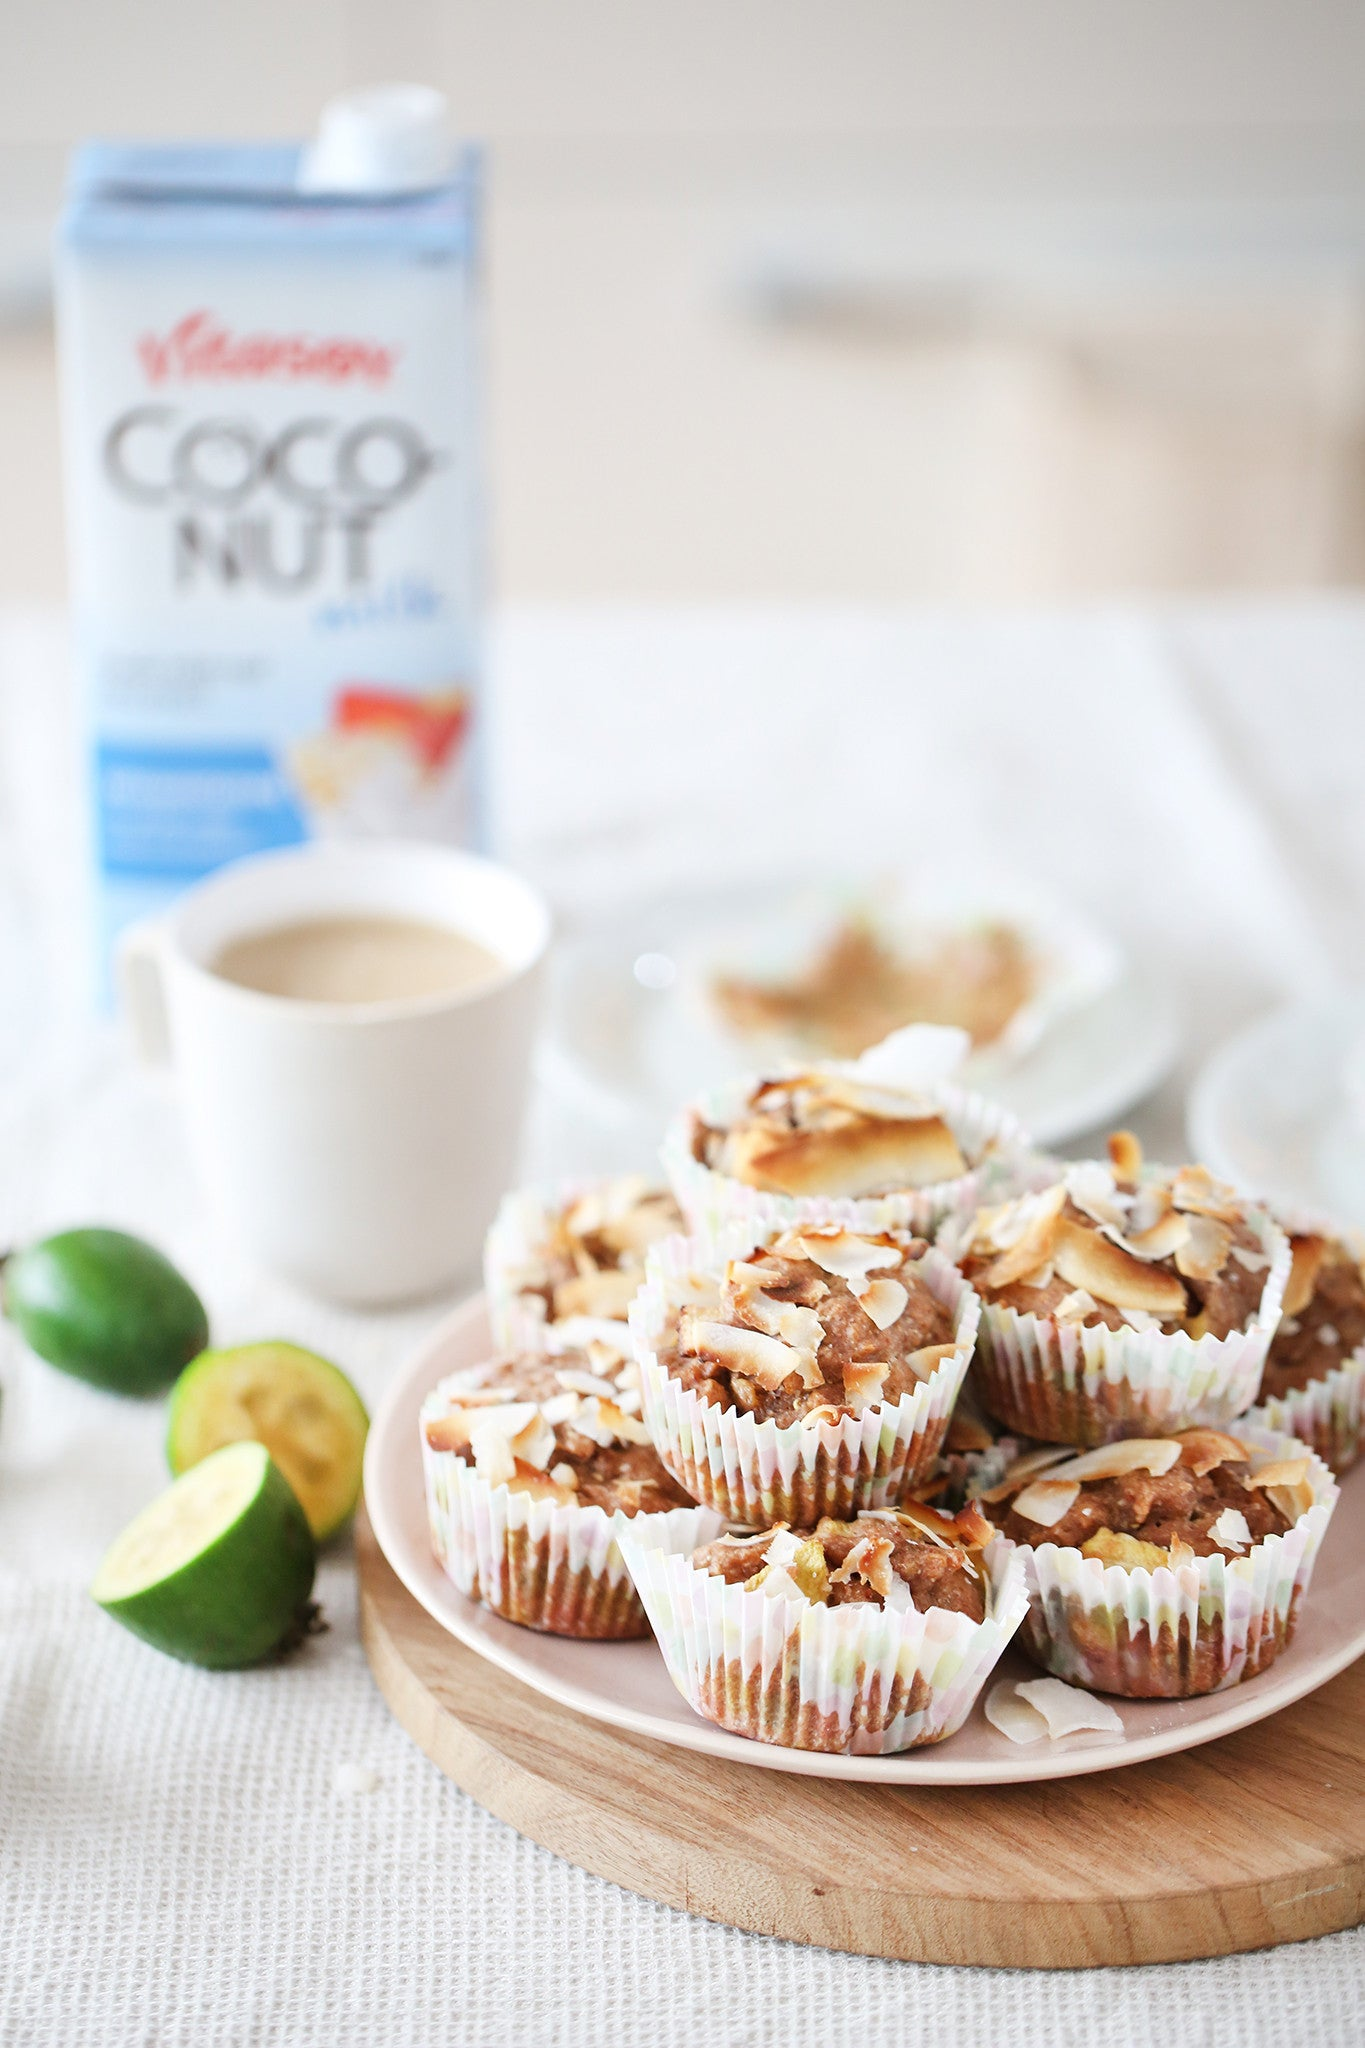 These light and fruity muffins use one of my favourite fruits – feijoas! If you're a feijoa fan you'll love these (and if not, come to NZ to try them!) Vegan, dairy, egg, gluten and refined added sugar free.